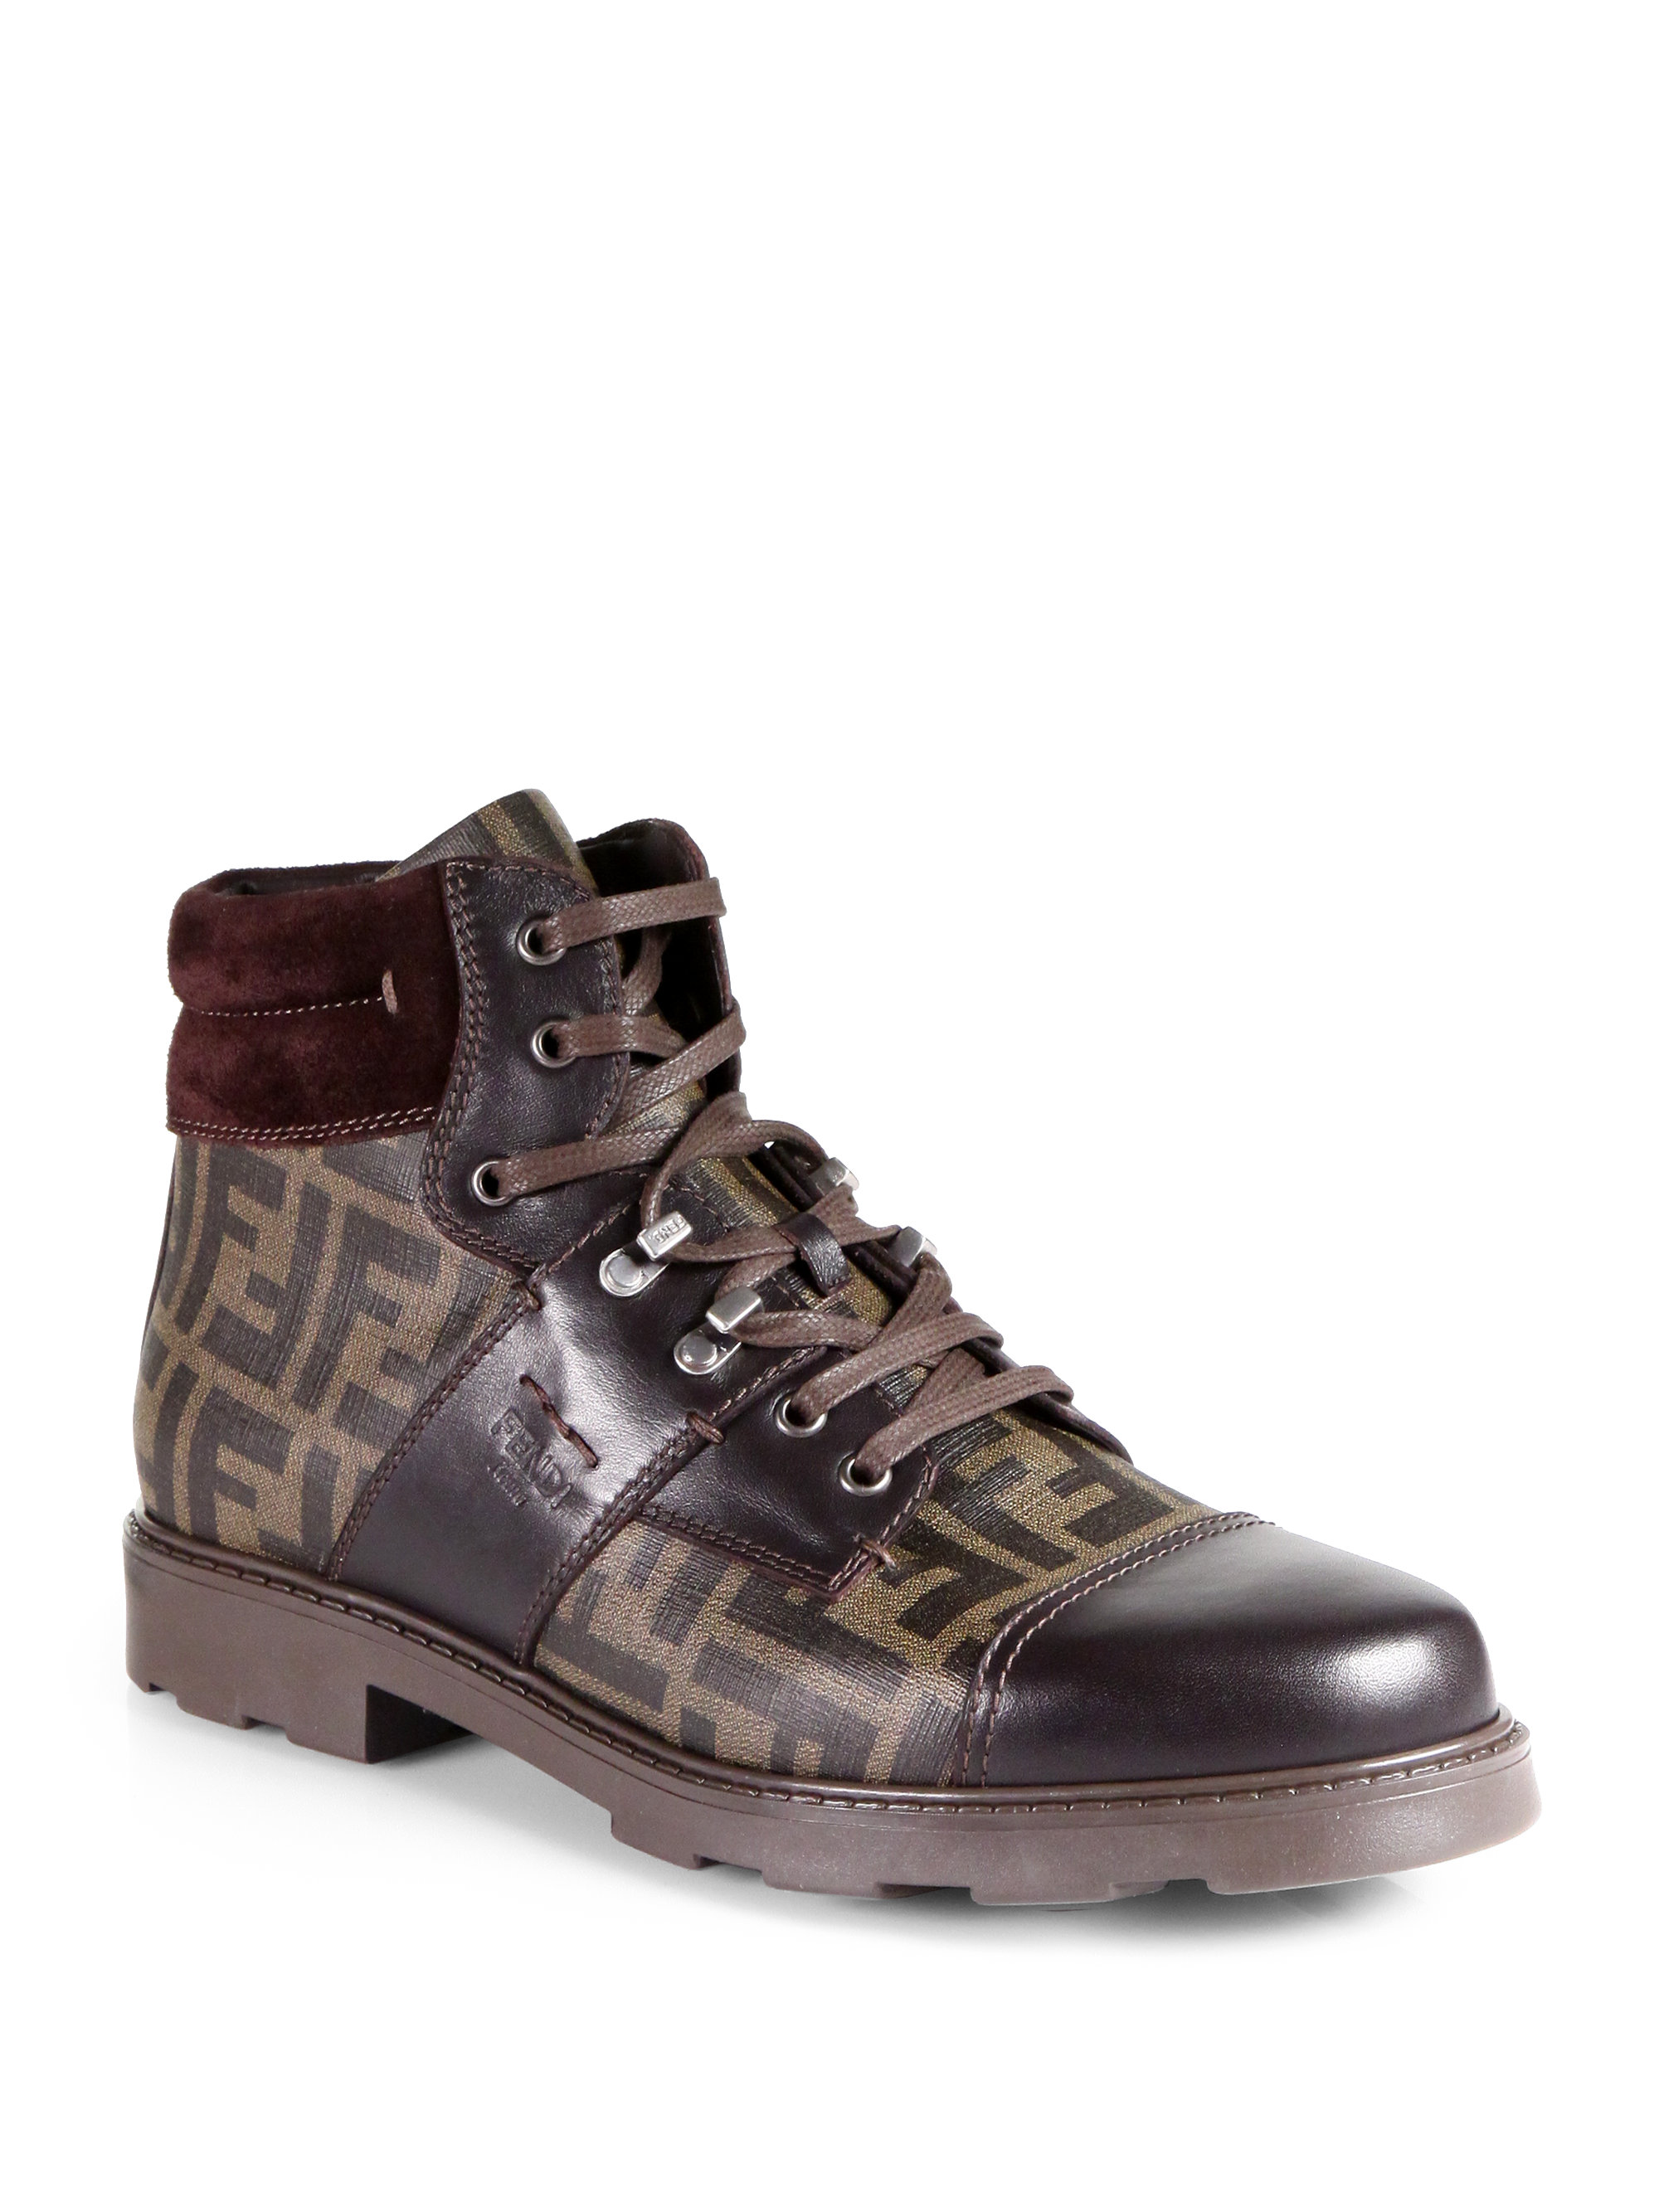 Lyst Fendi Zucca Laceup Boots In Brown For Men